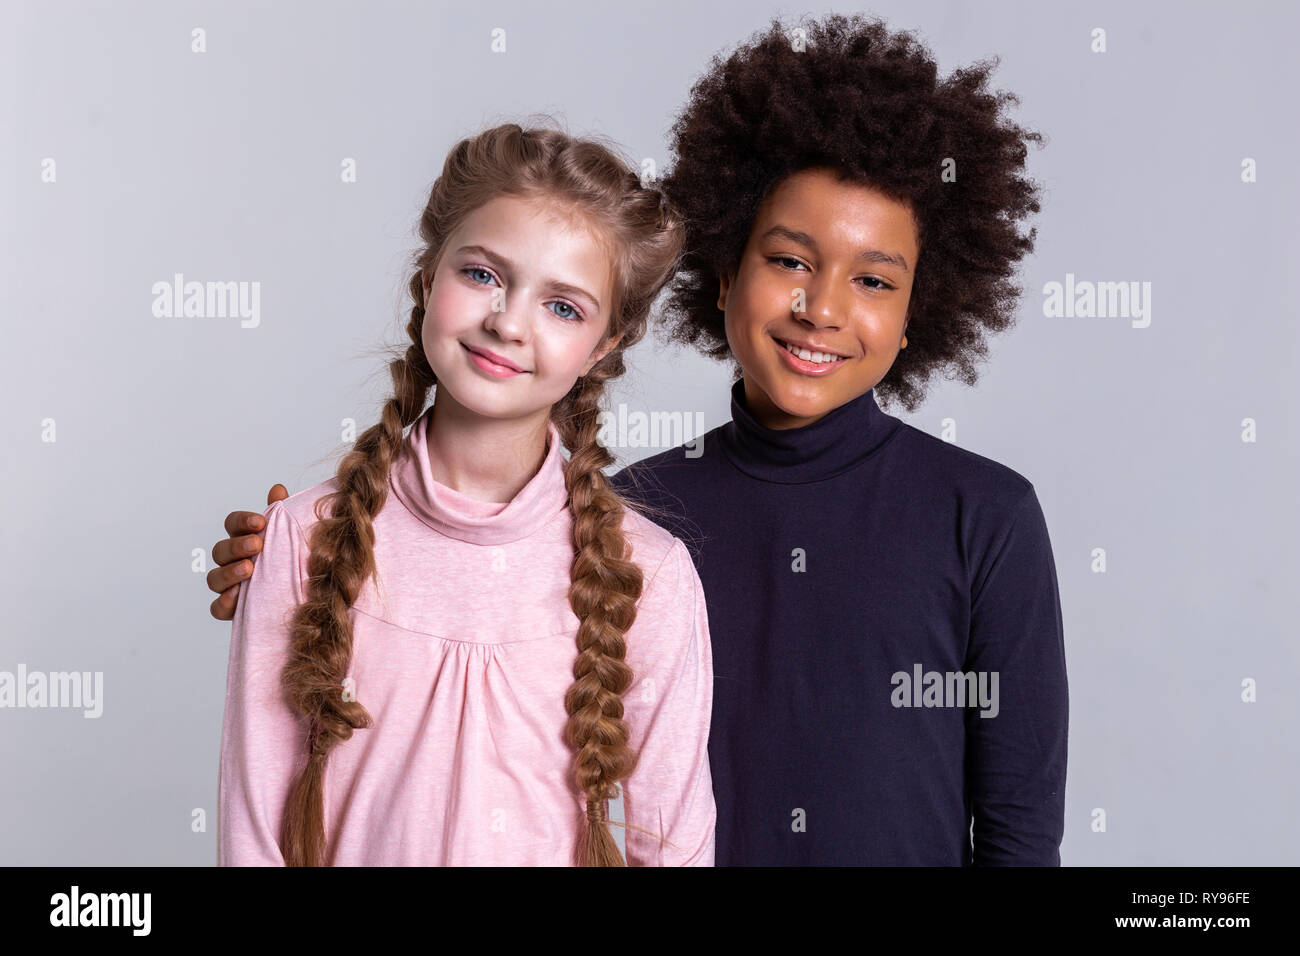 Smiling African American boy gently hugging his blonde friend - Stock Image